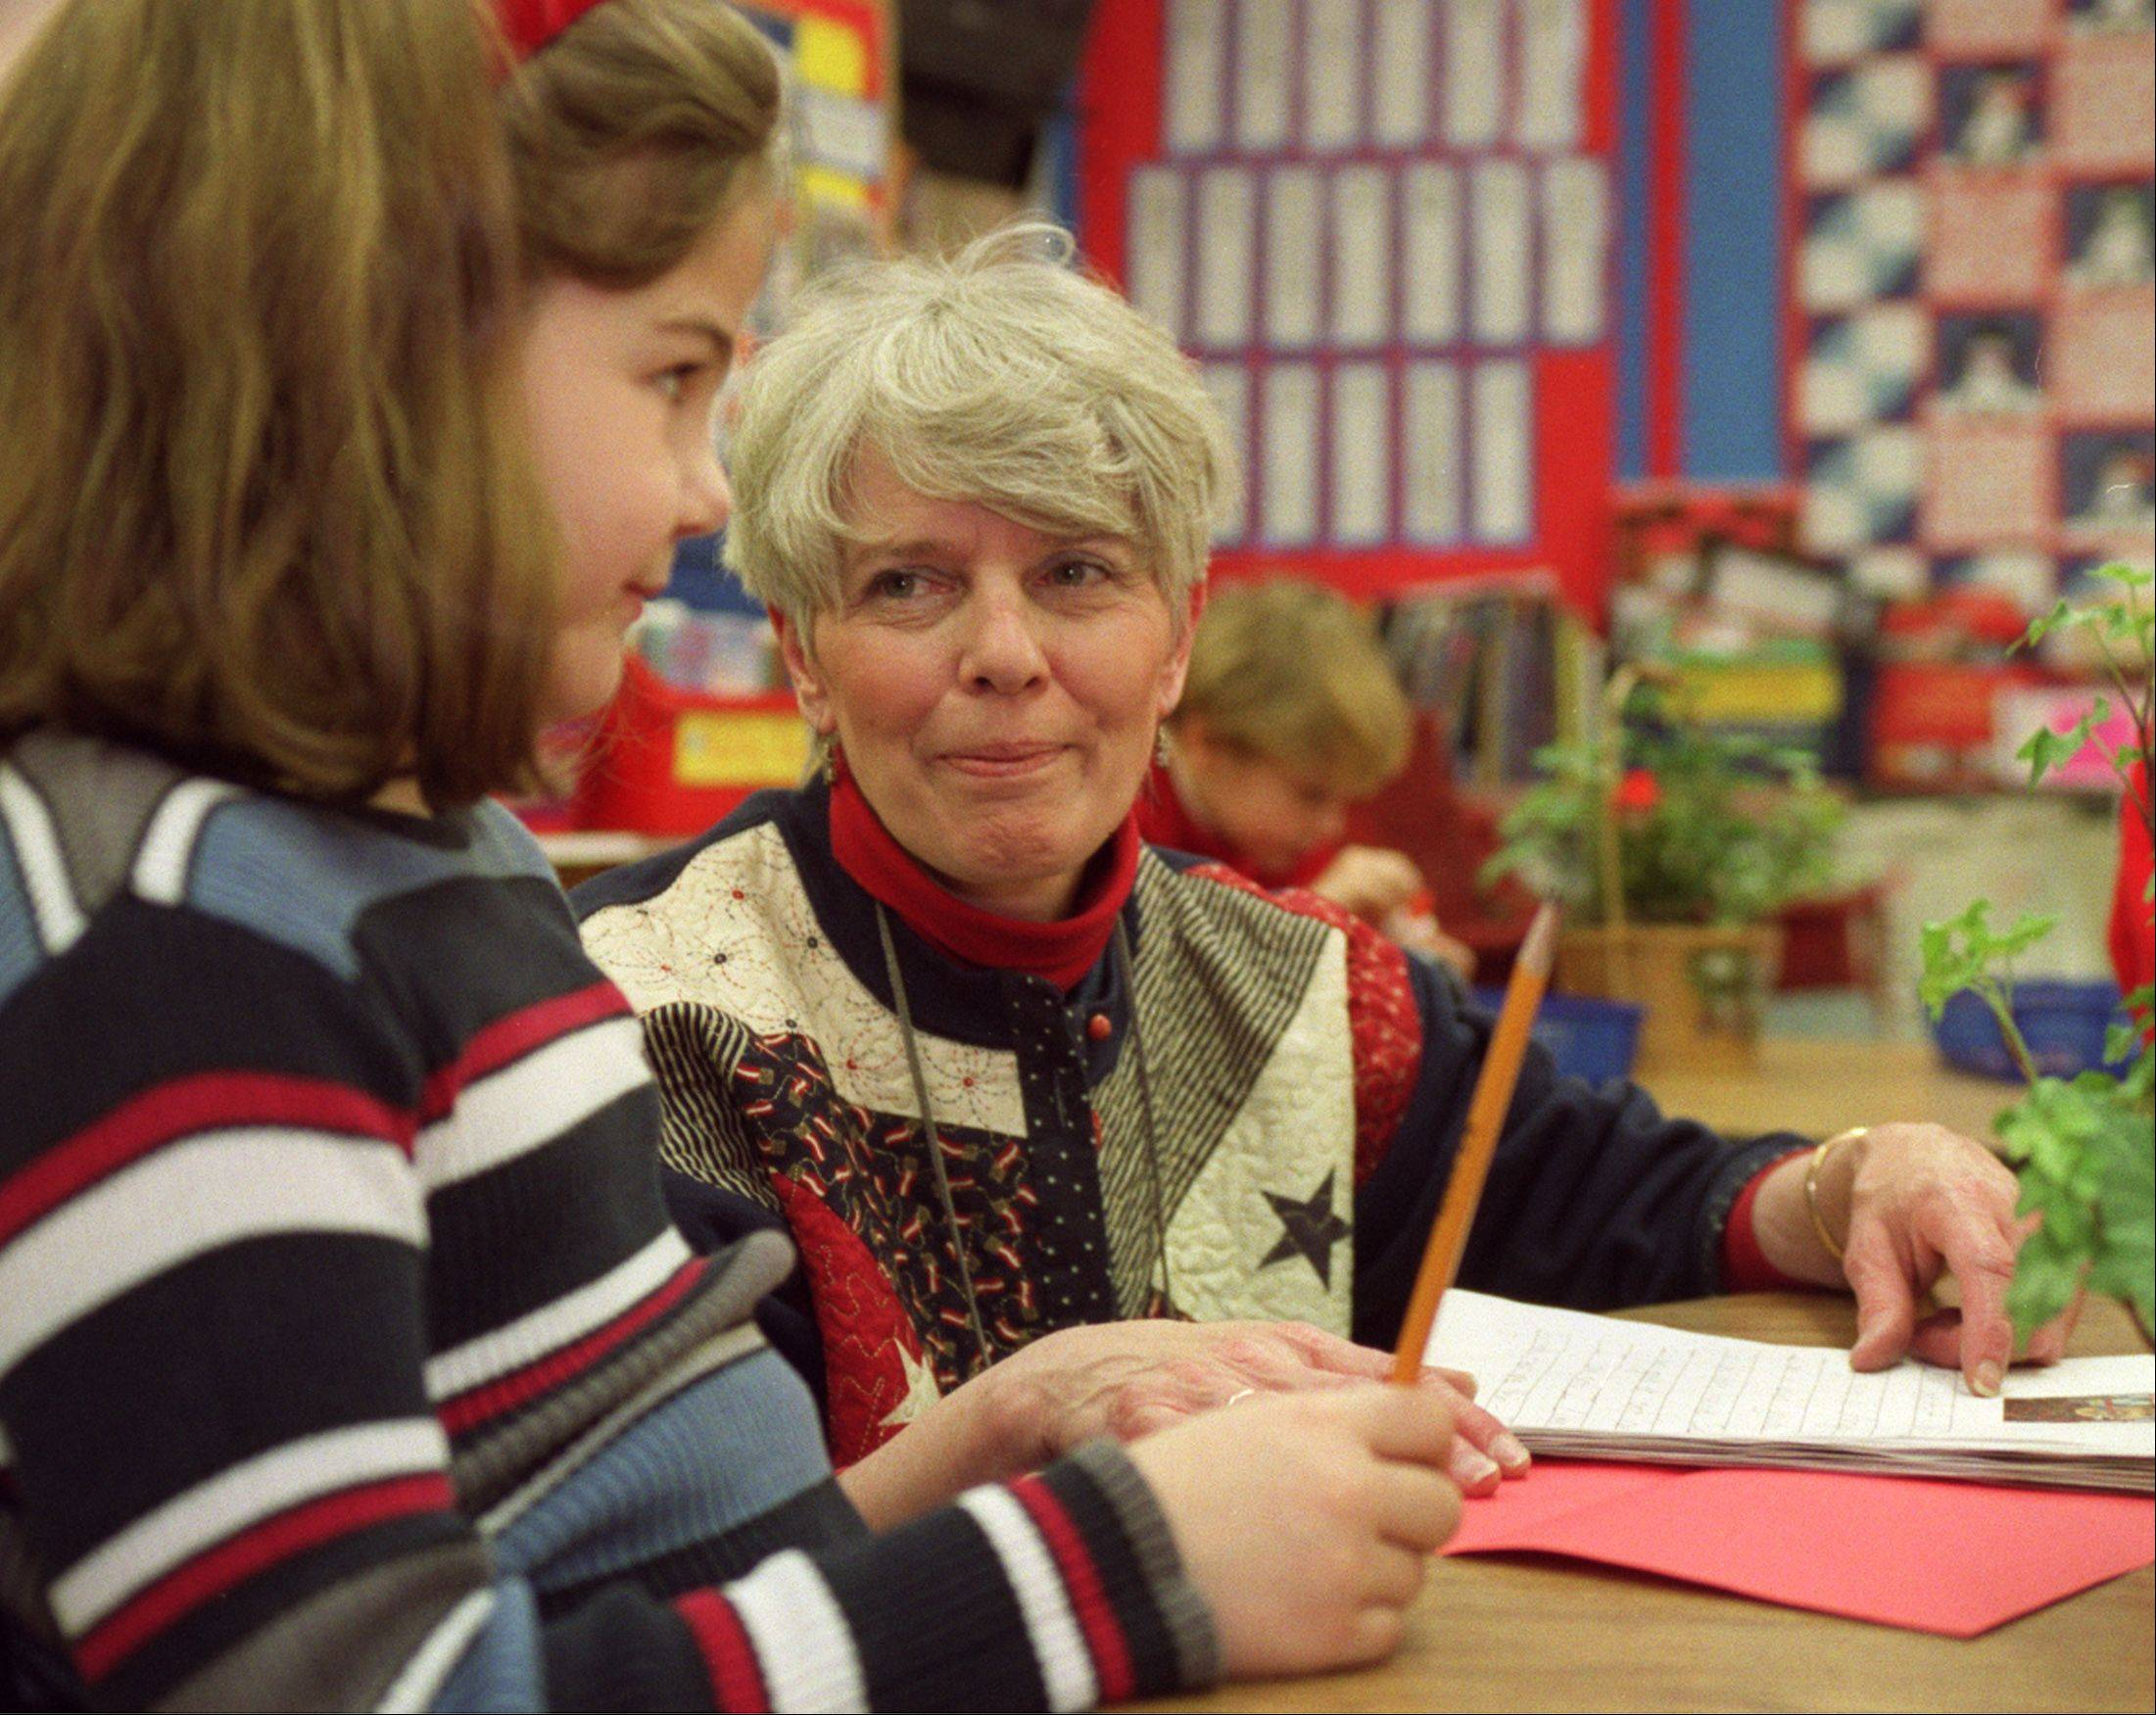 Teacher Mary Bencini works with a student on a Valentine's Day letter during class on Friday at Western Avenue Elementary School in Geneva.